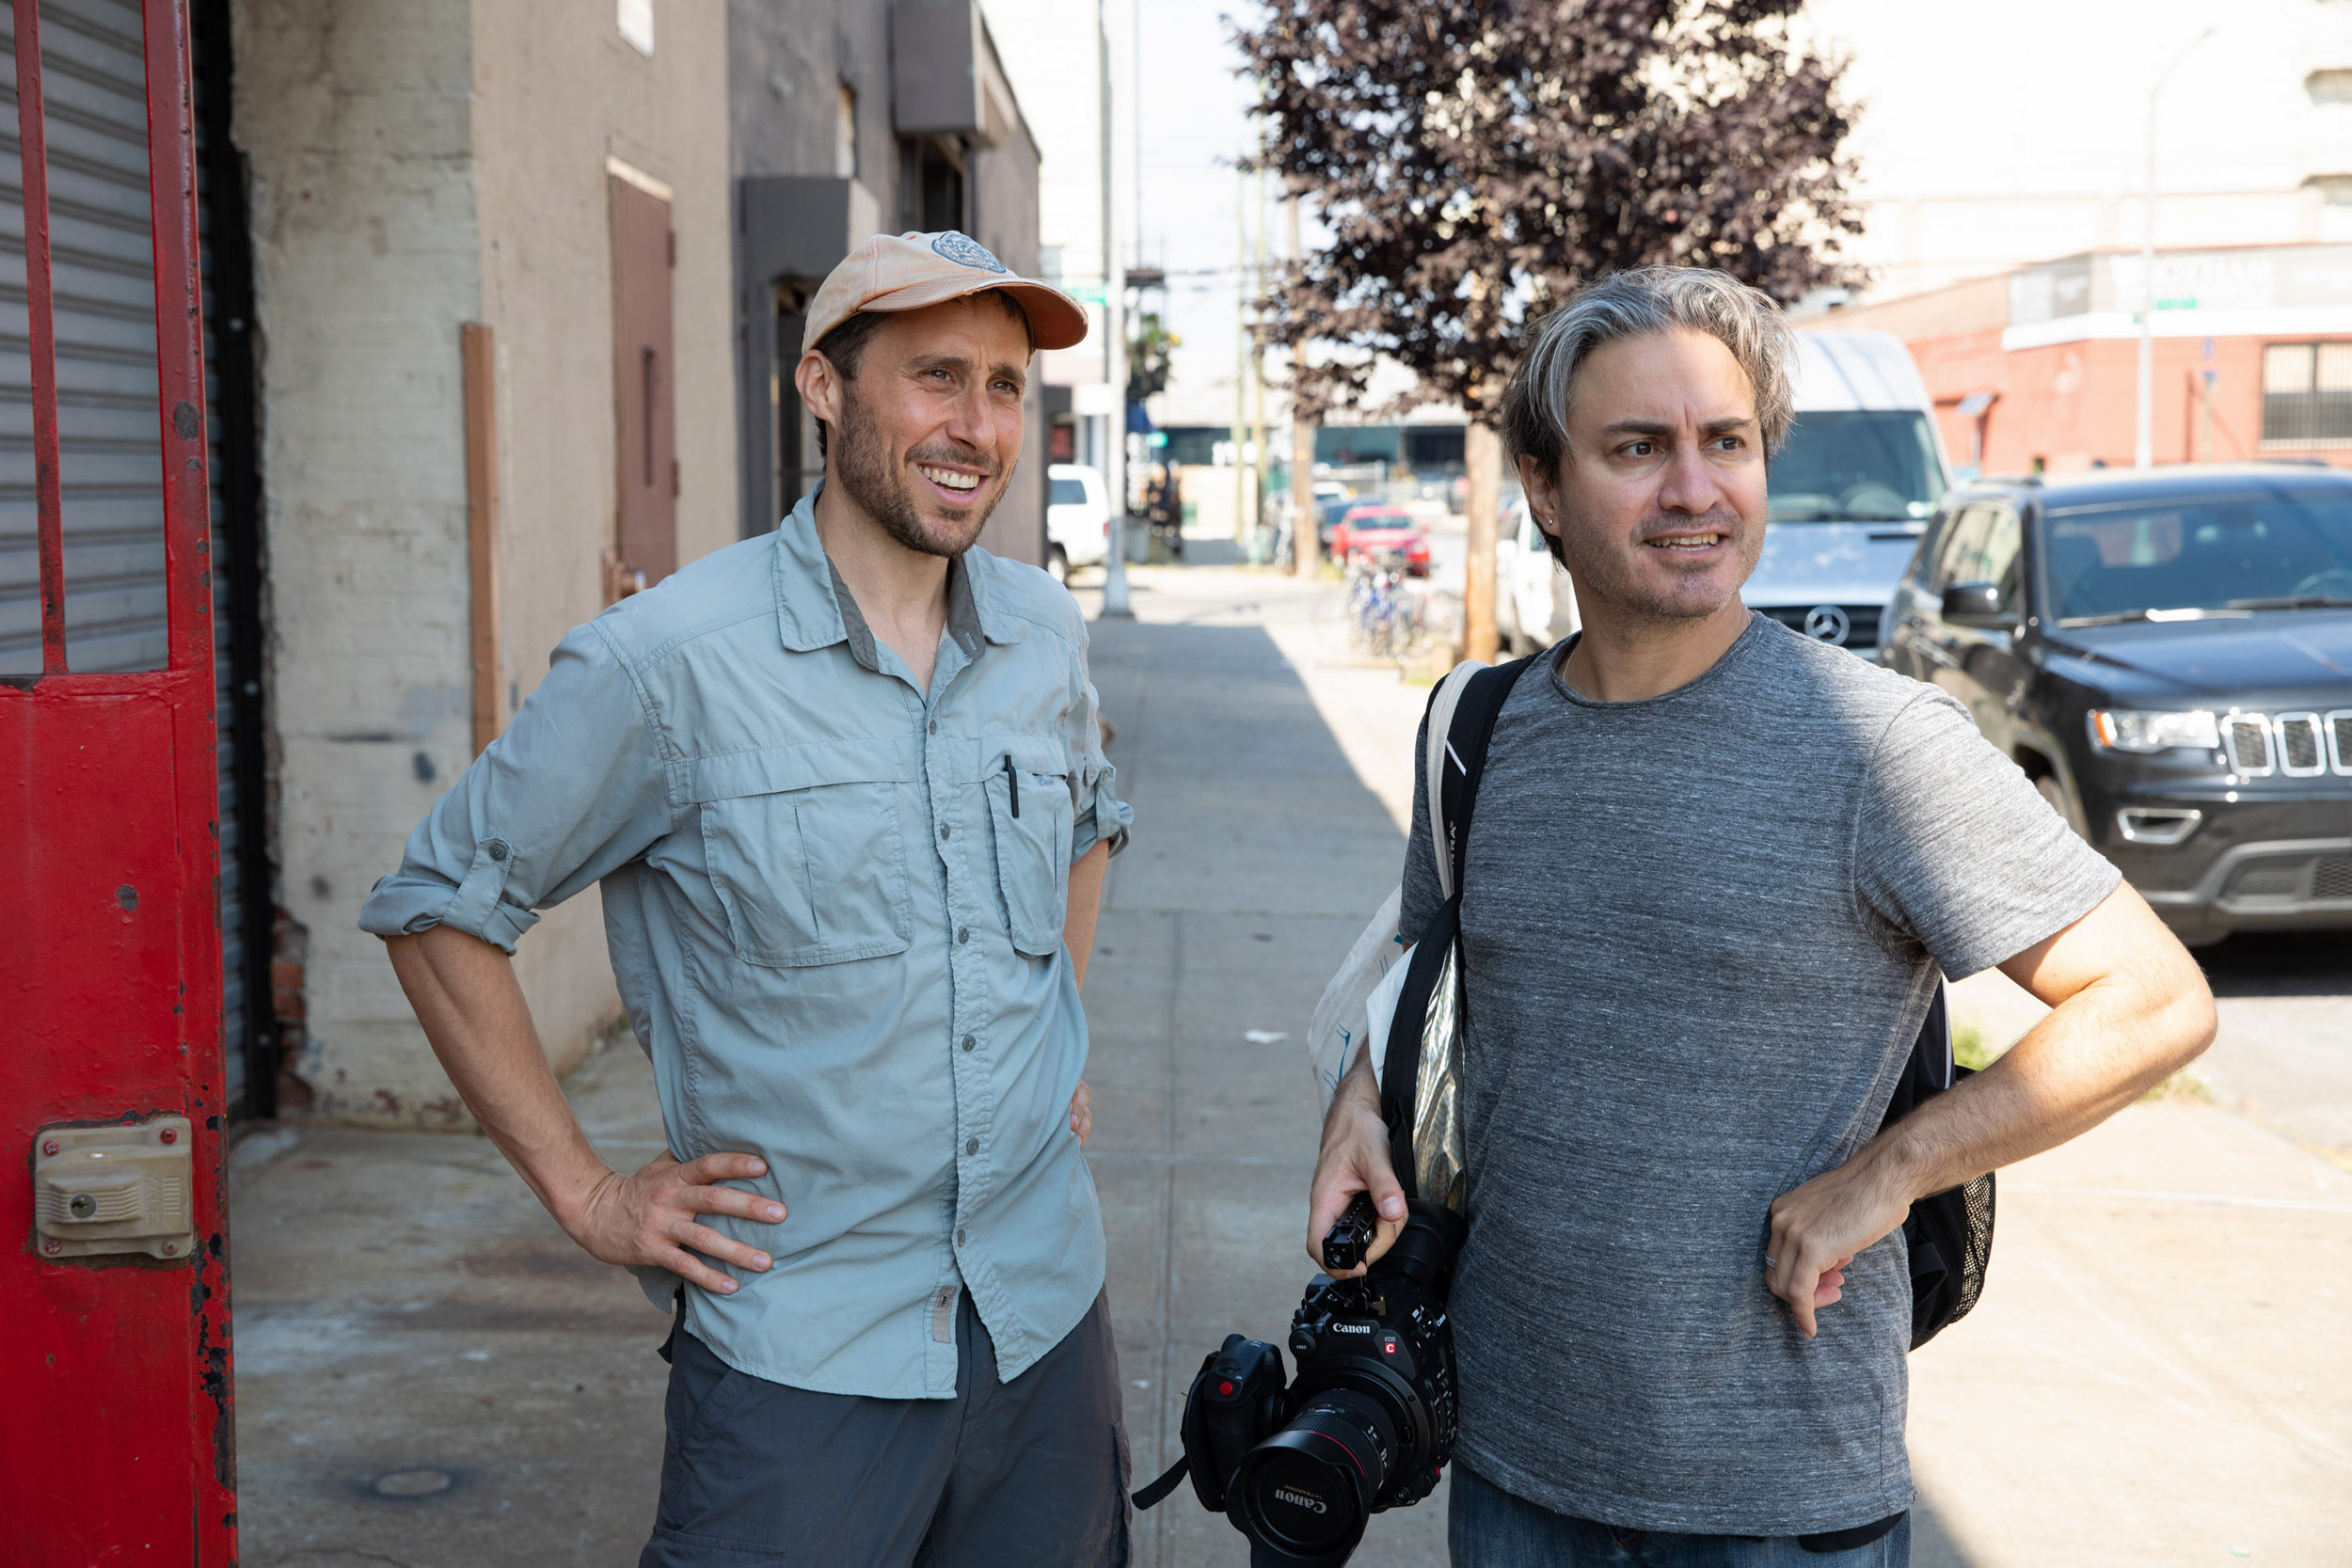 Green, left, with his good friend Jeremy Workman, who convinced him to allow a camera on his walks.